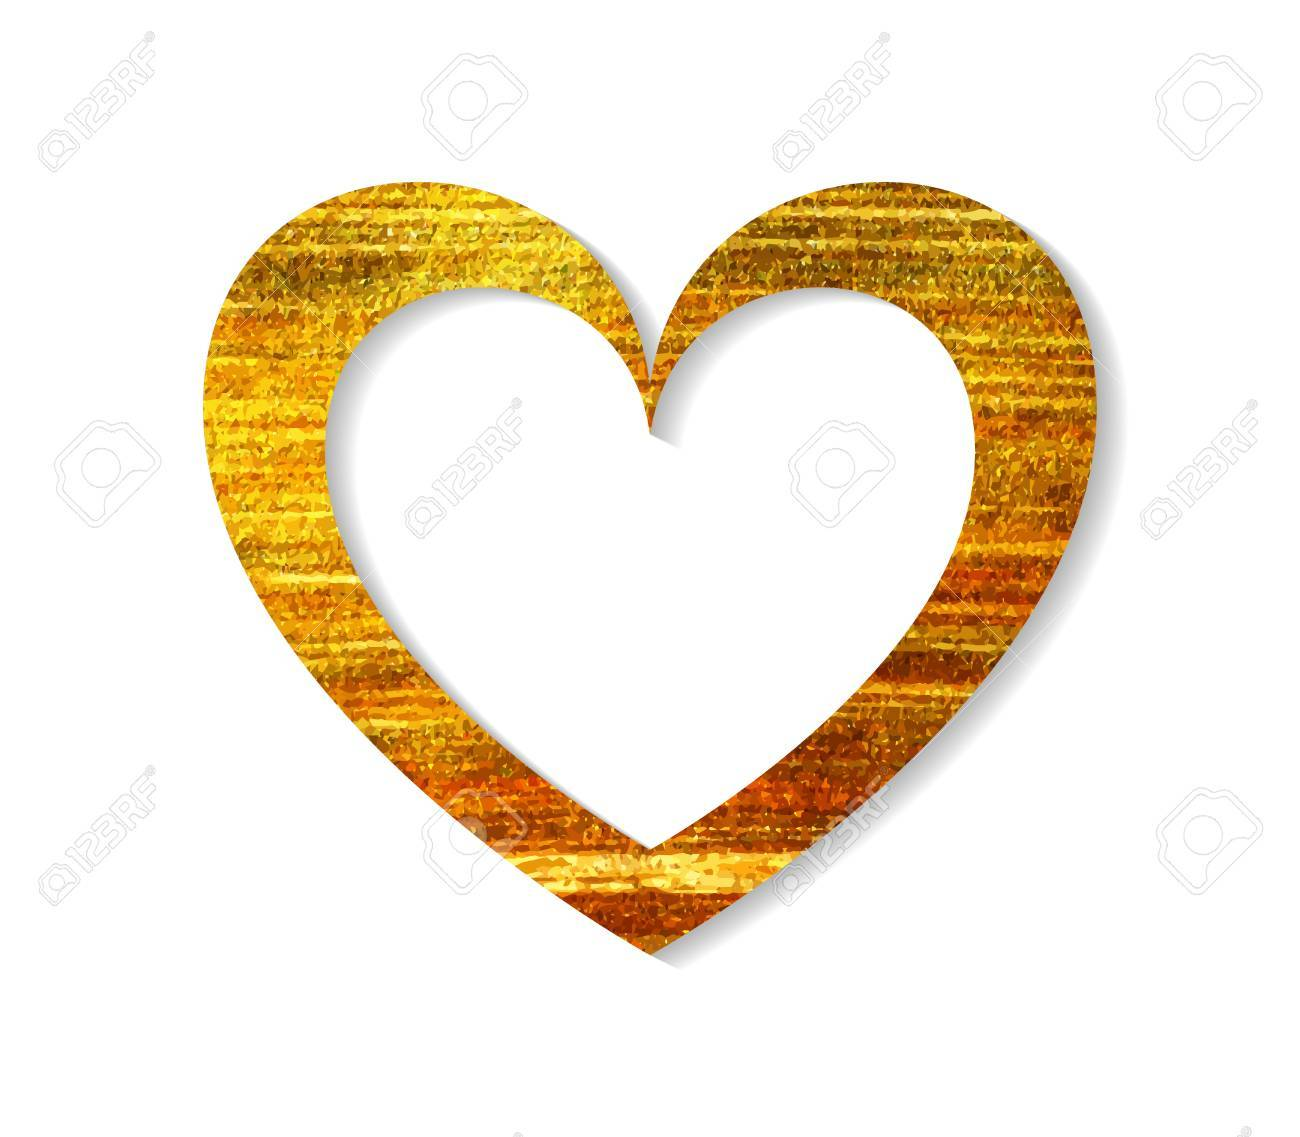 Gold Heart Frame On A White Background Design Element For Valentine Royalty Free Cliparts Vectors And Stock Illustration Image 51907029